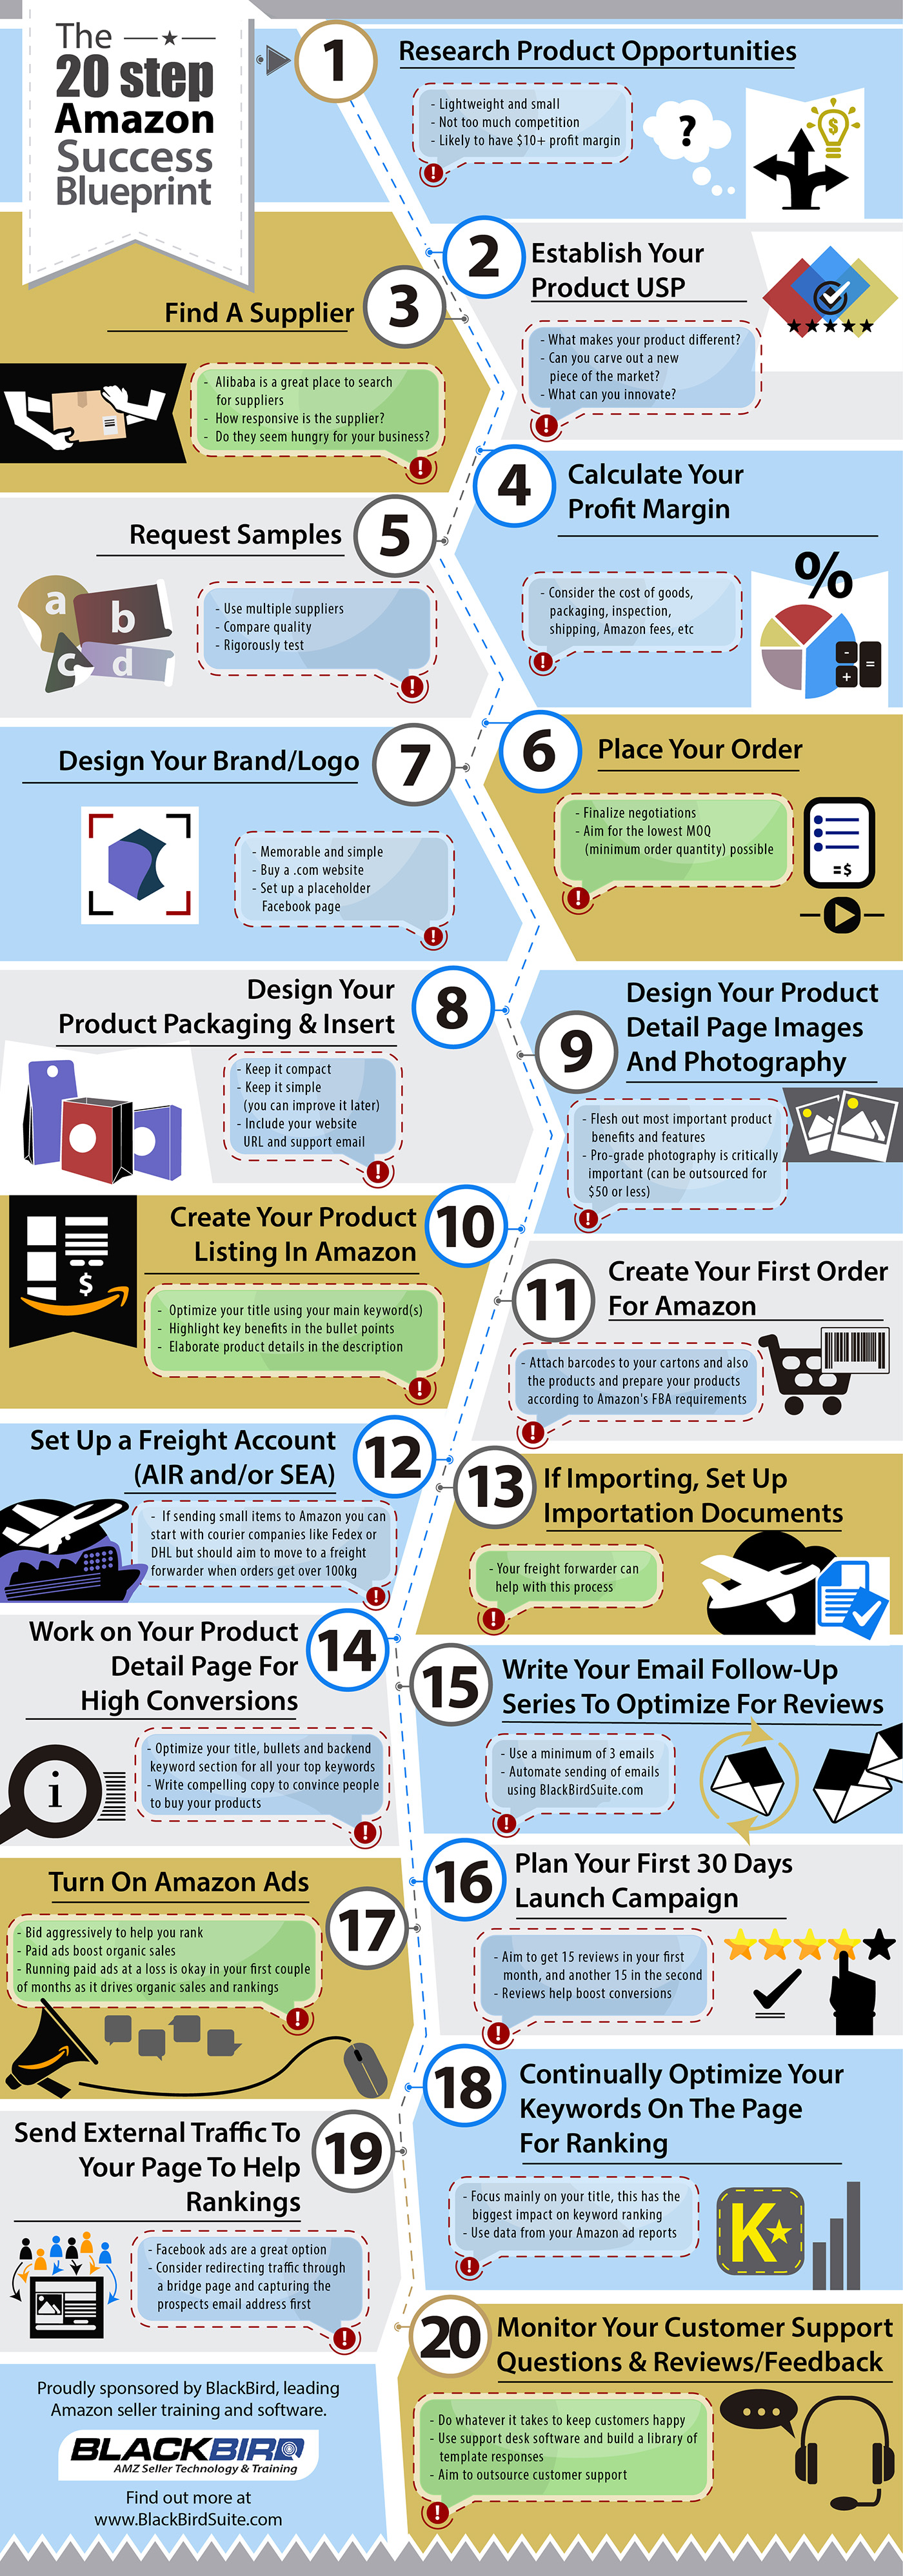 20 Step Amazon Success Blueprint